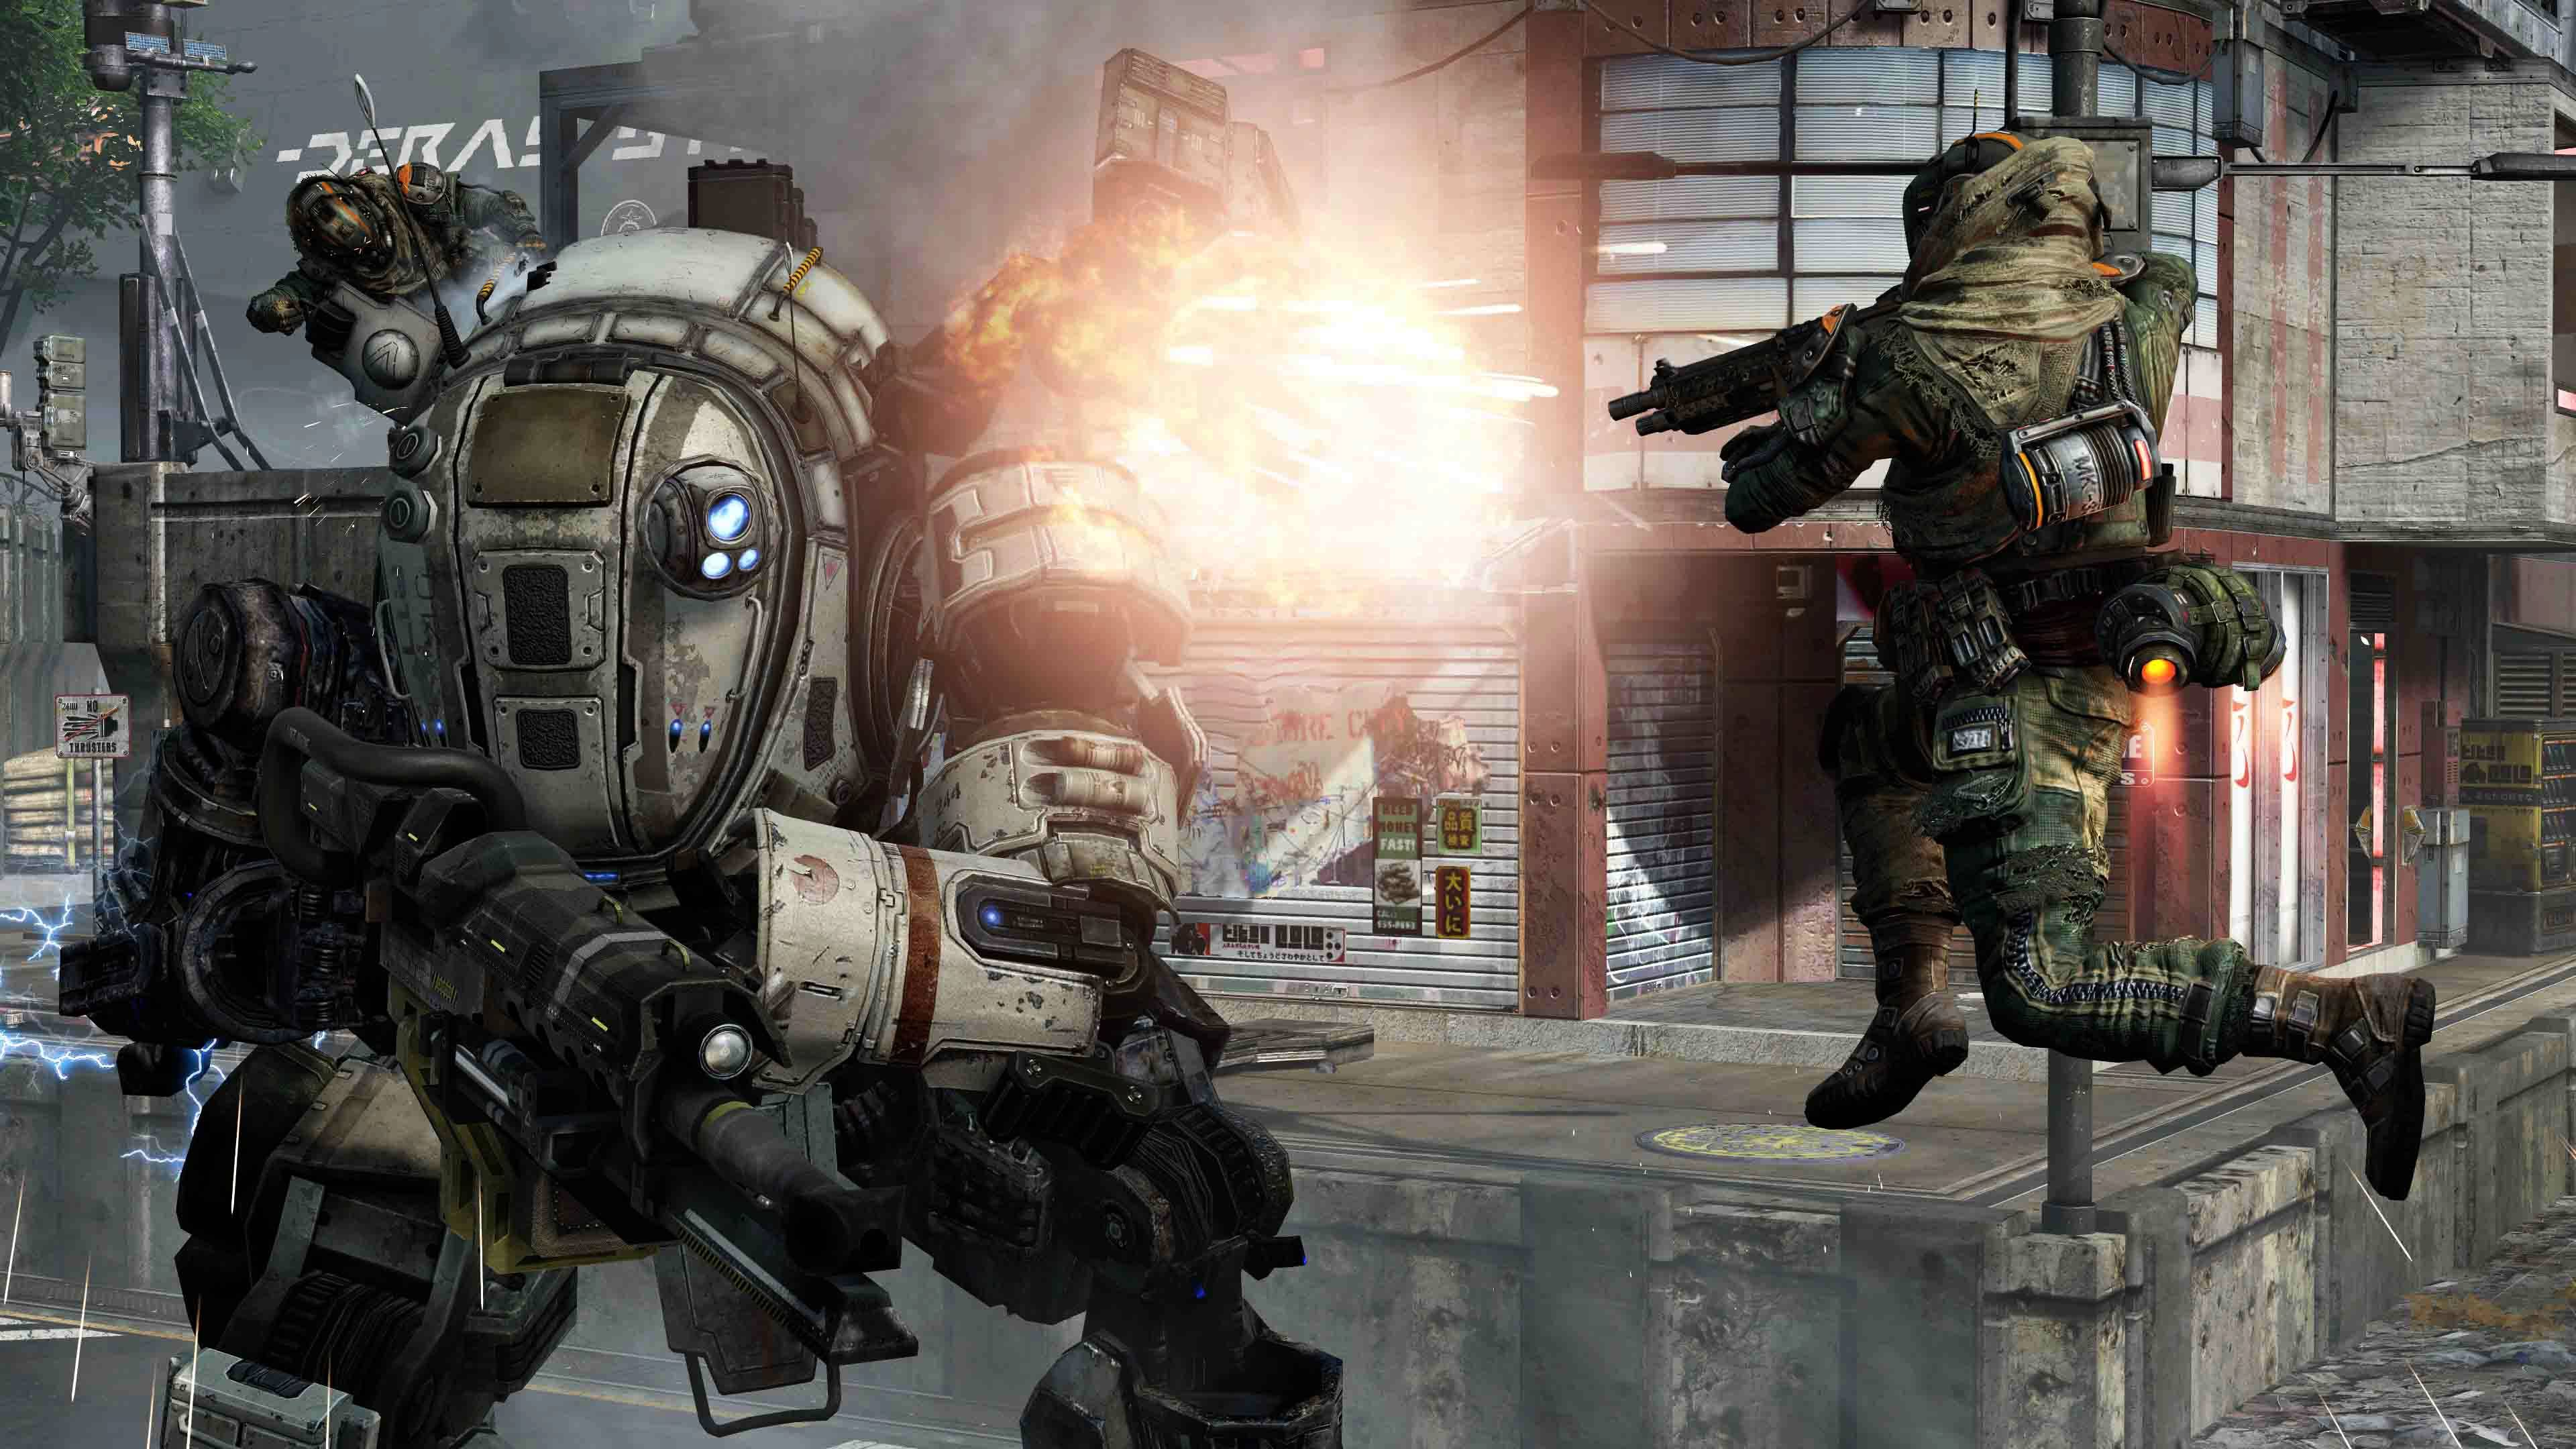 """Titanfall,"" set for release March 11 on Xbox One and PC and March 25 on Xbox 360, is aiming to shake things up with a mix of new gameplay elements."